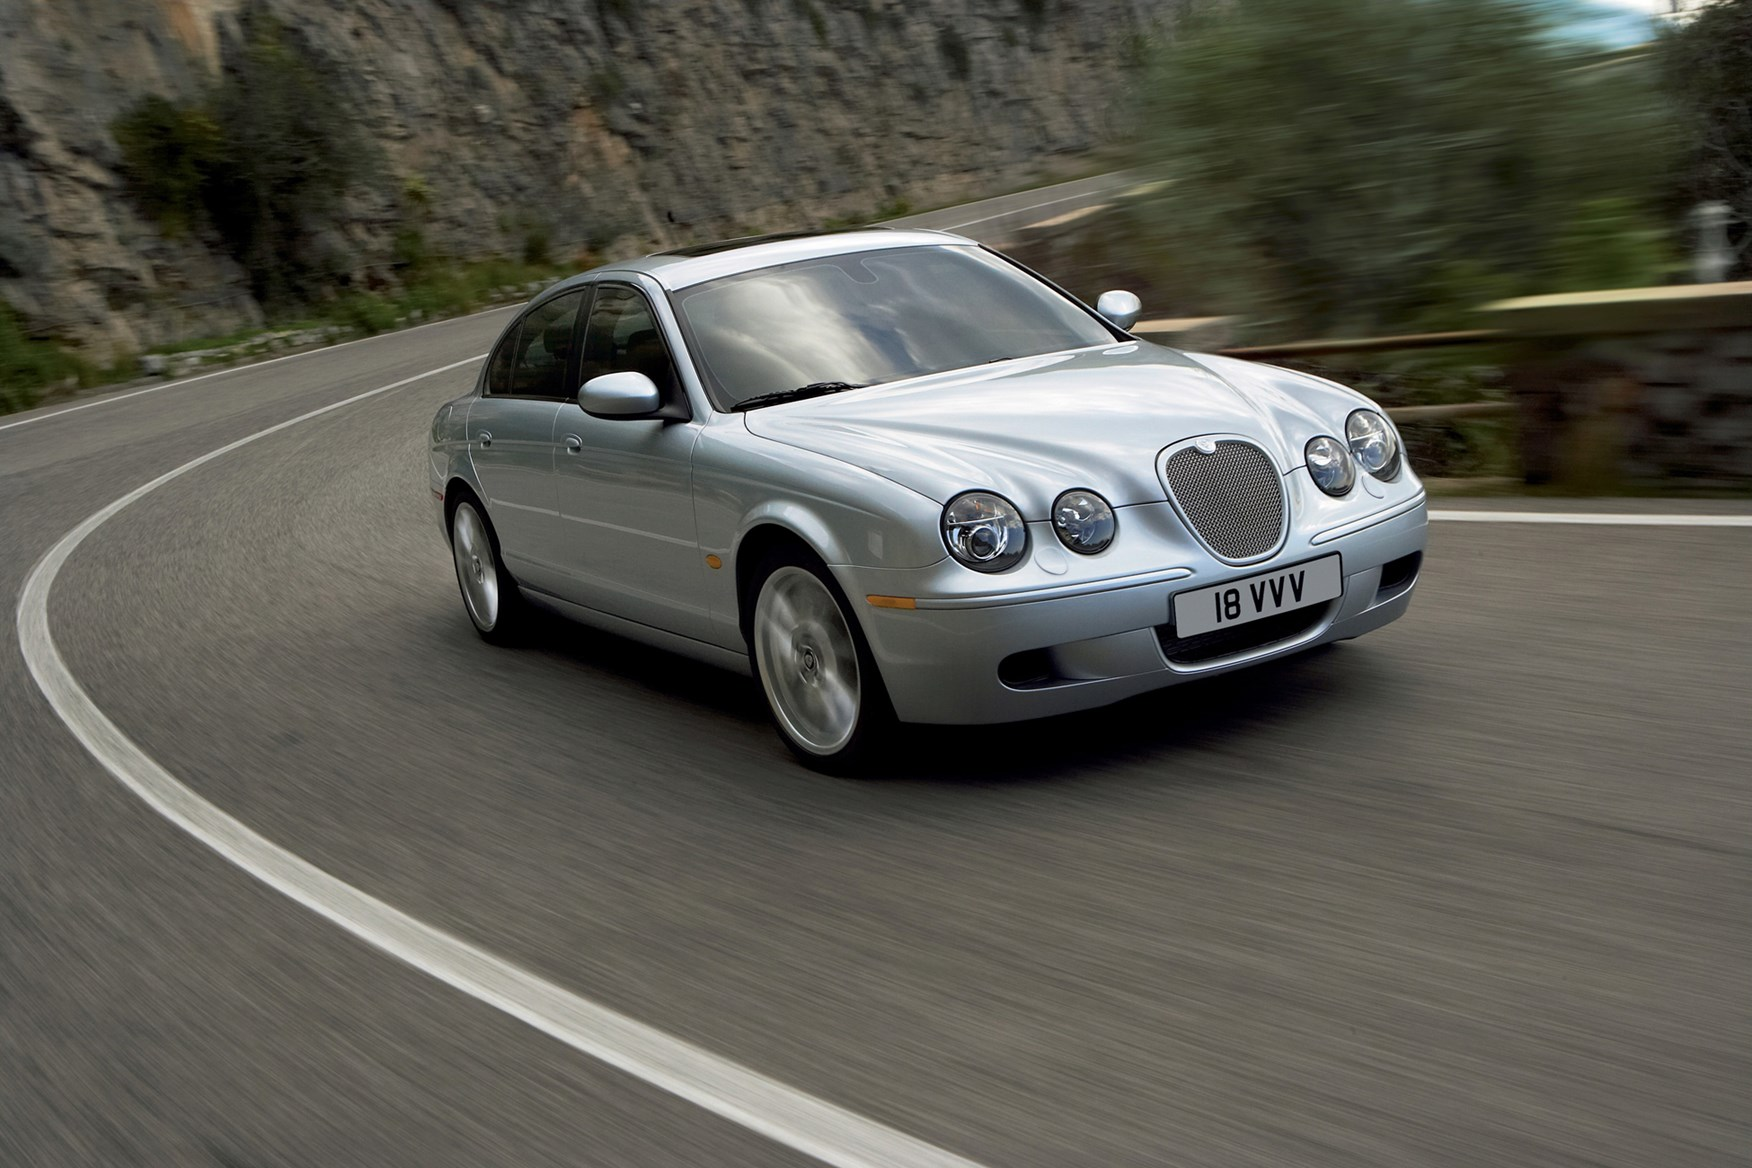 Jaguar S Type Saloon Review 1999 2007 Parkers 2003 R Supercharged How Much Is It To Insure